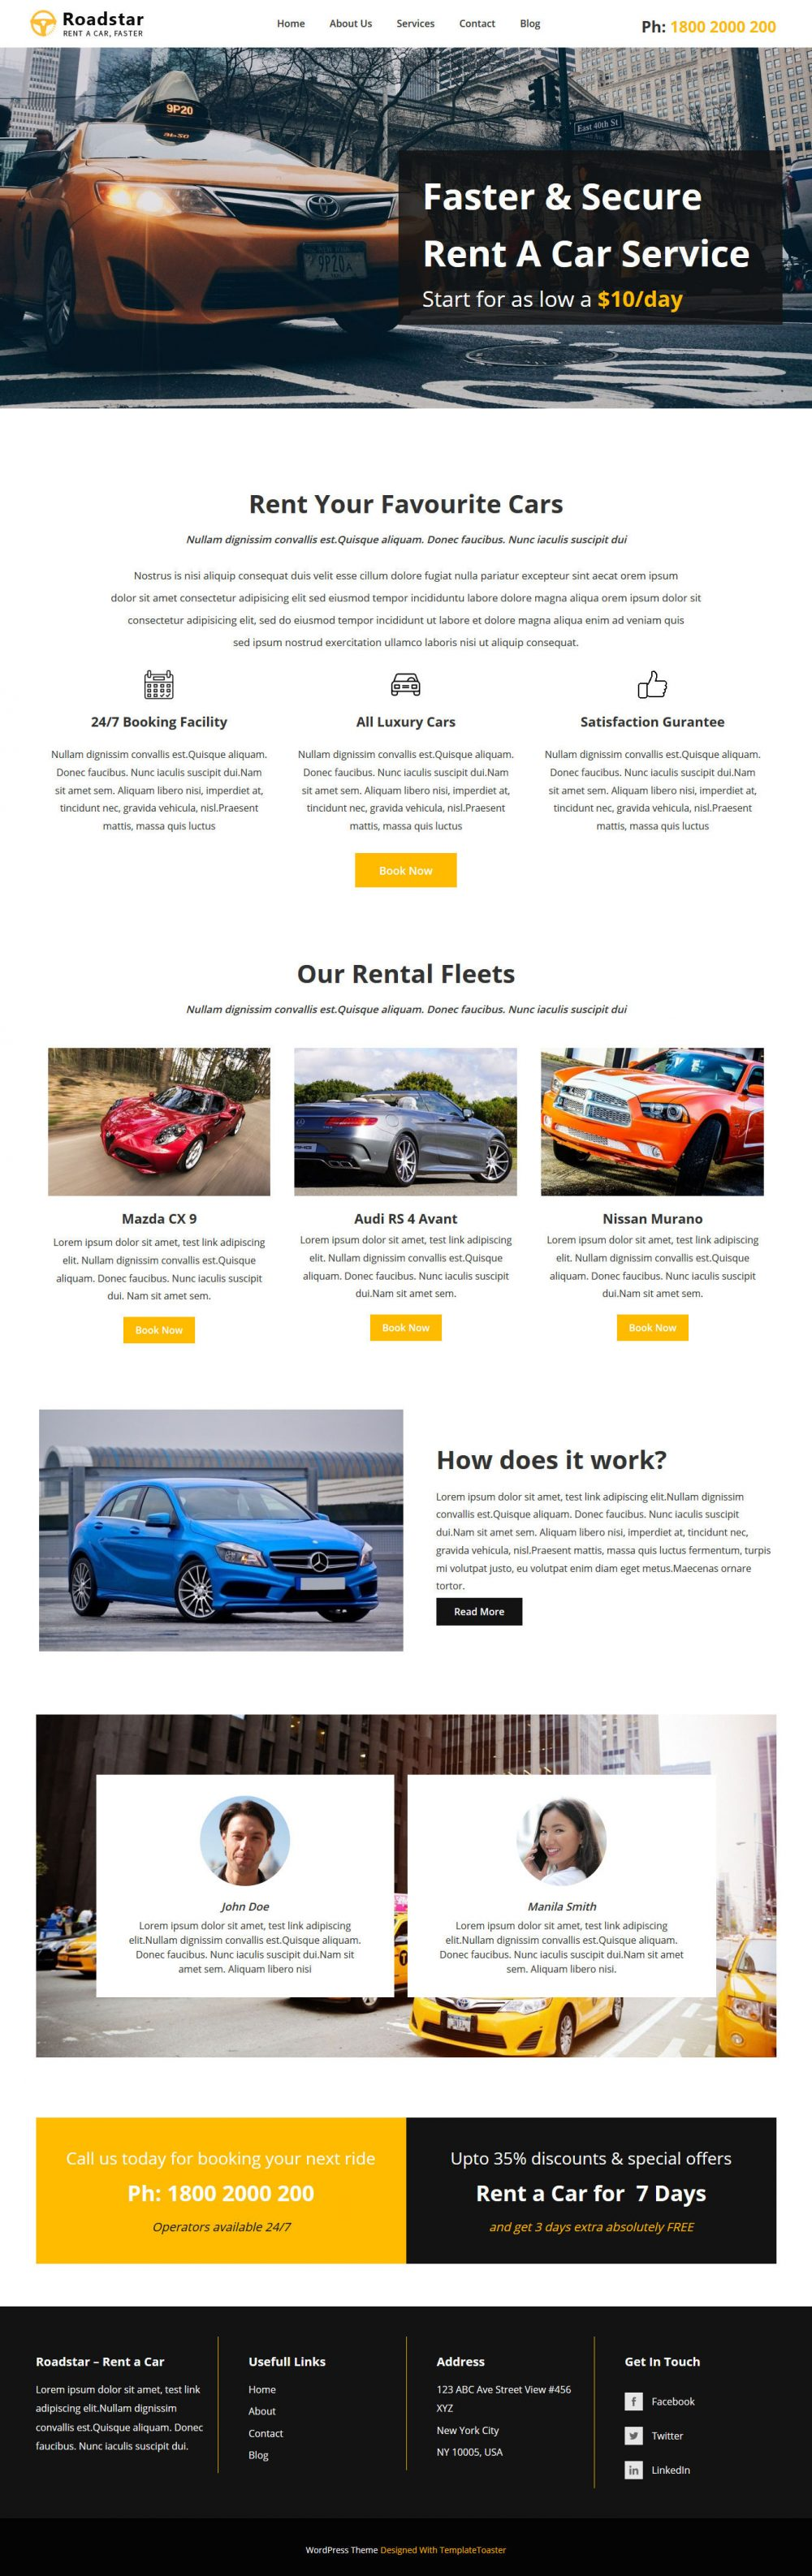 roadstar car rental services html template